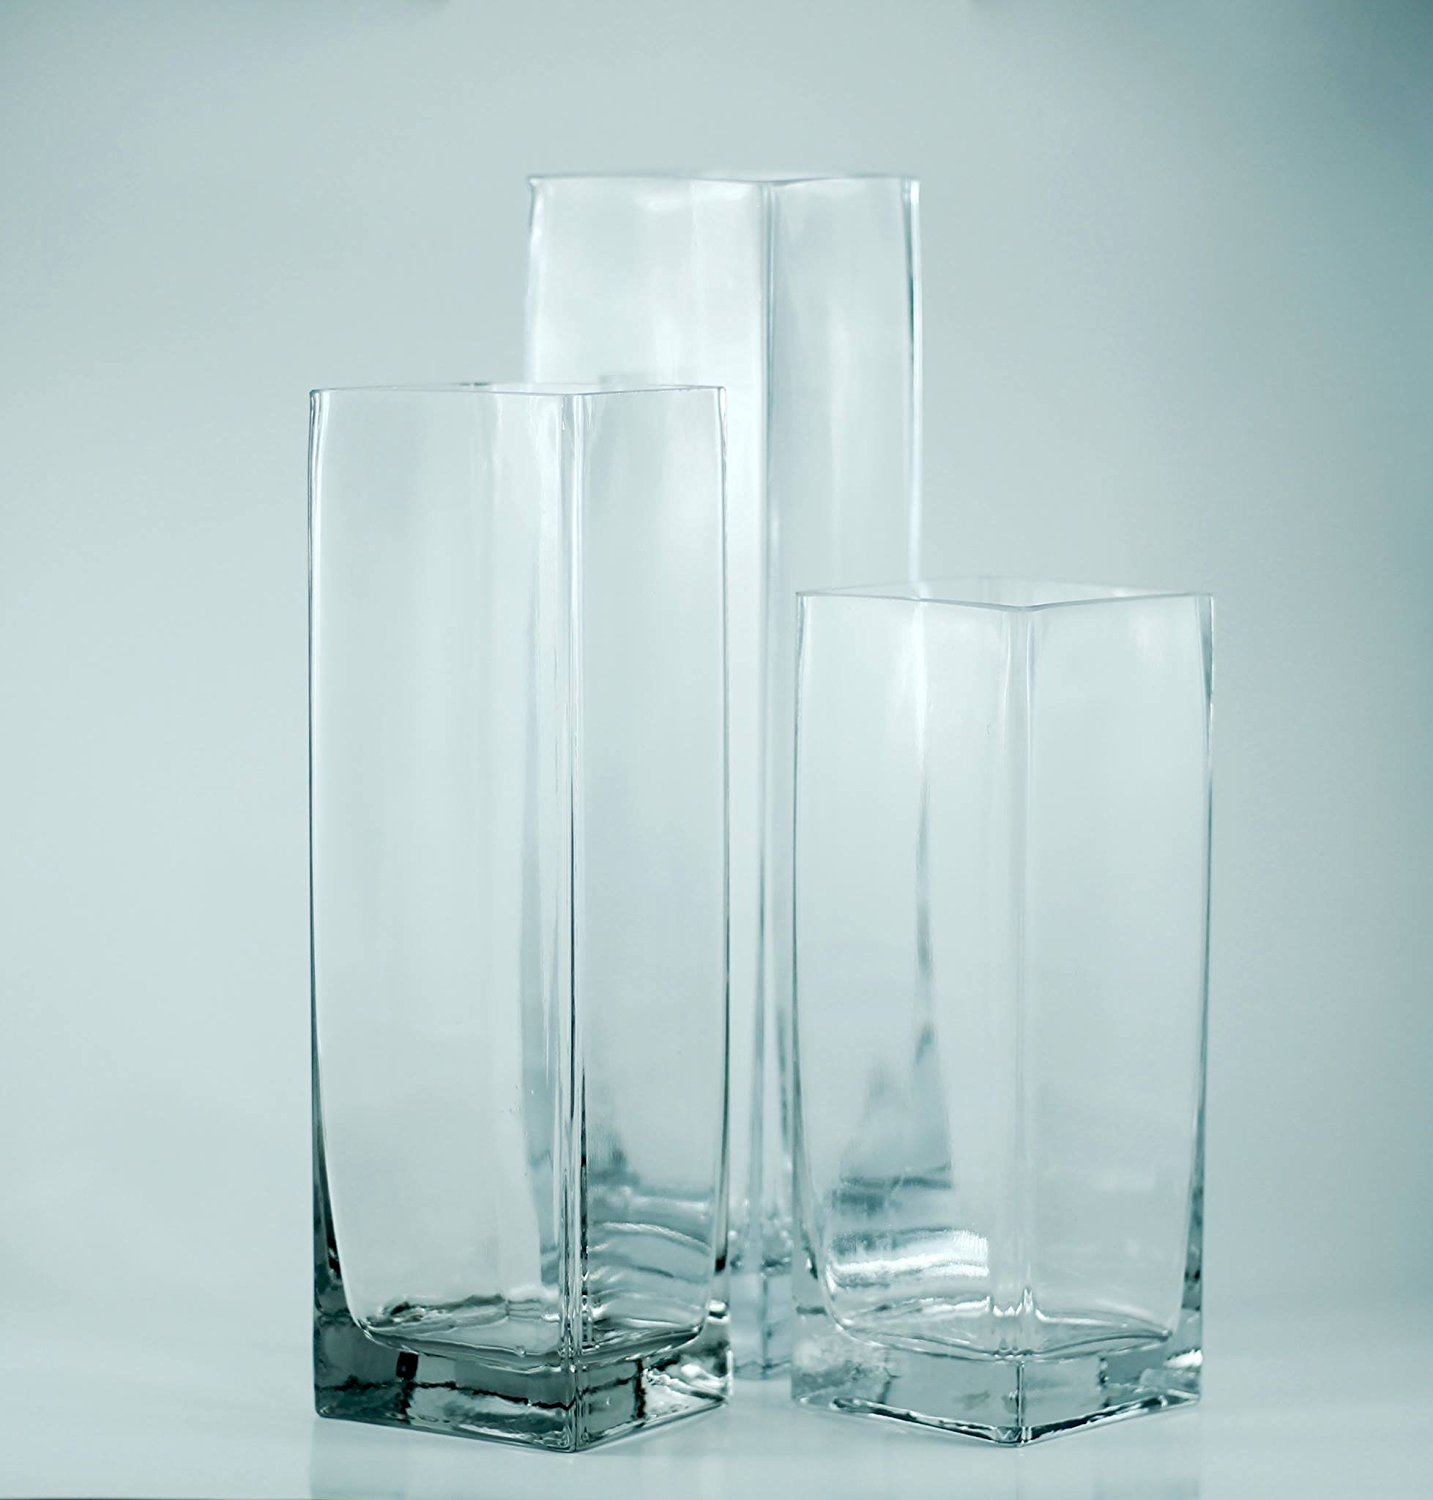 Cheap Twisted Square Vase Find Twisted Square Vase Deals On Line At Alibaba Com